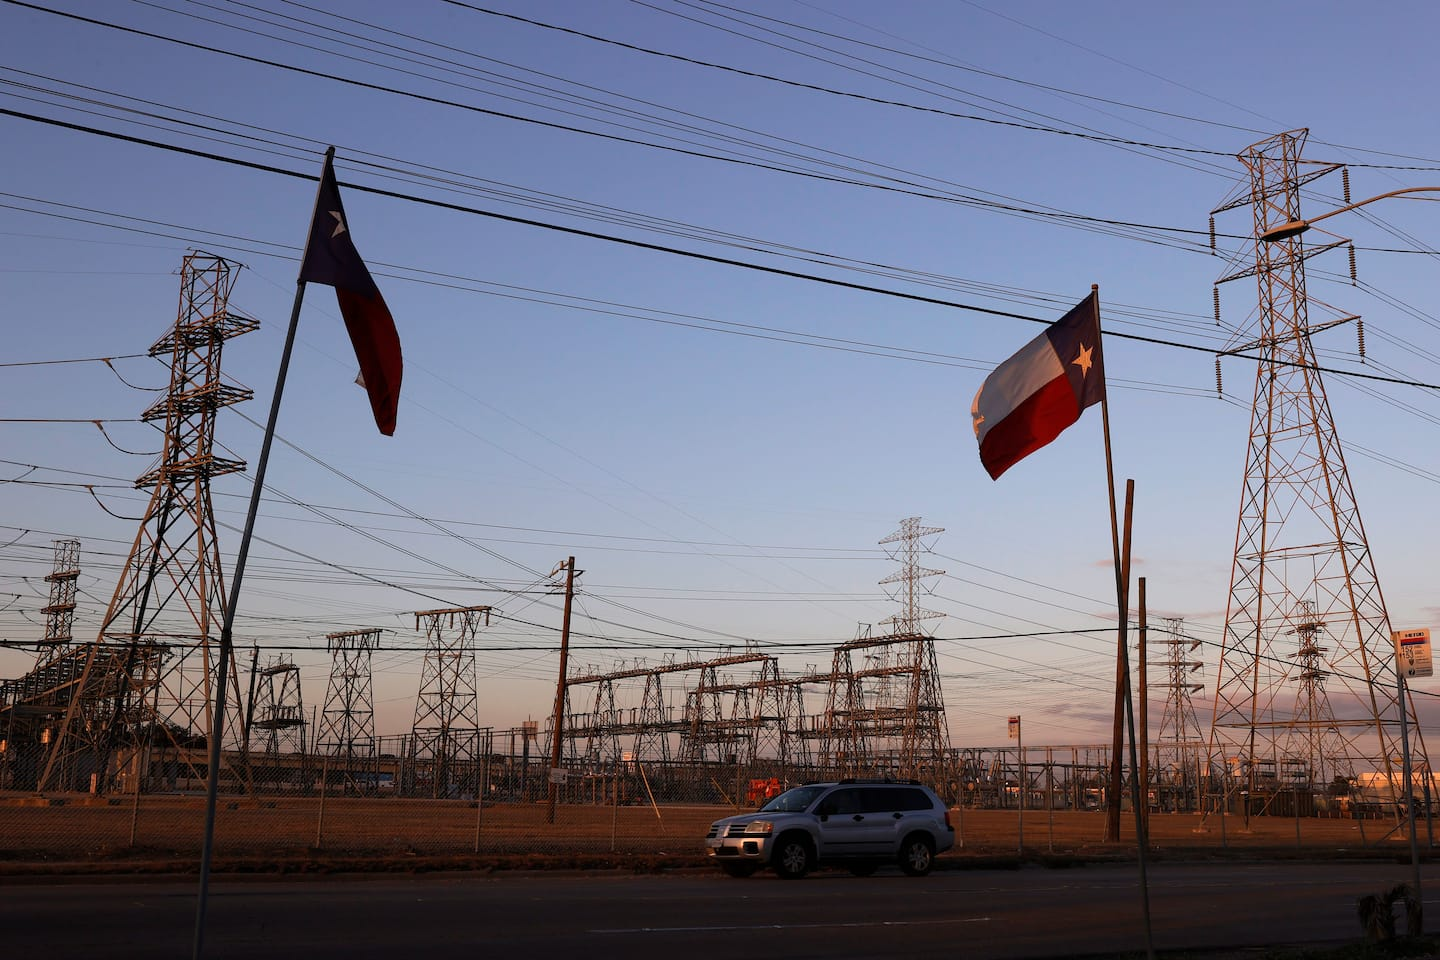 As Texans went without heat, light or water, some companies scored a big payday out of their misery